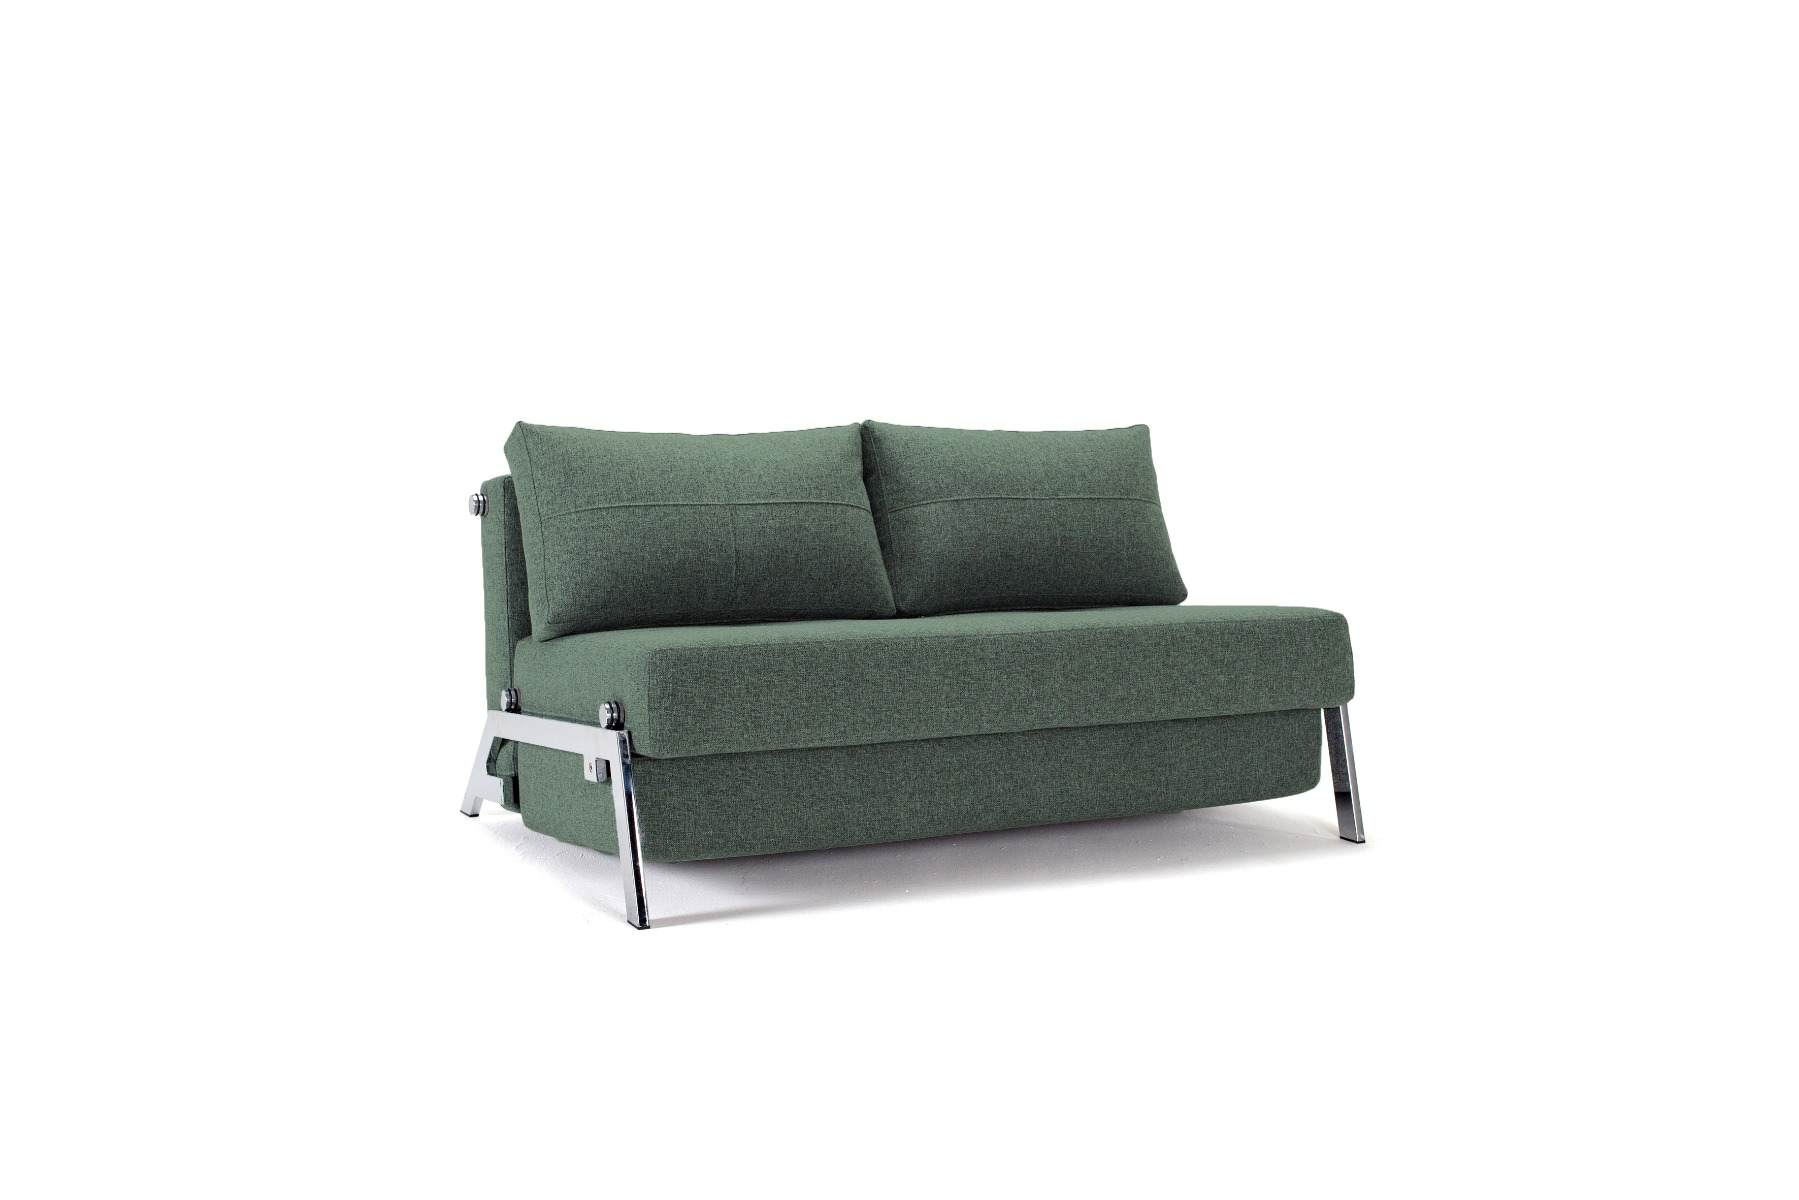 Image of Cubed 140 deluxe - Elegance Green